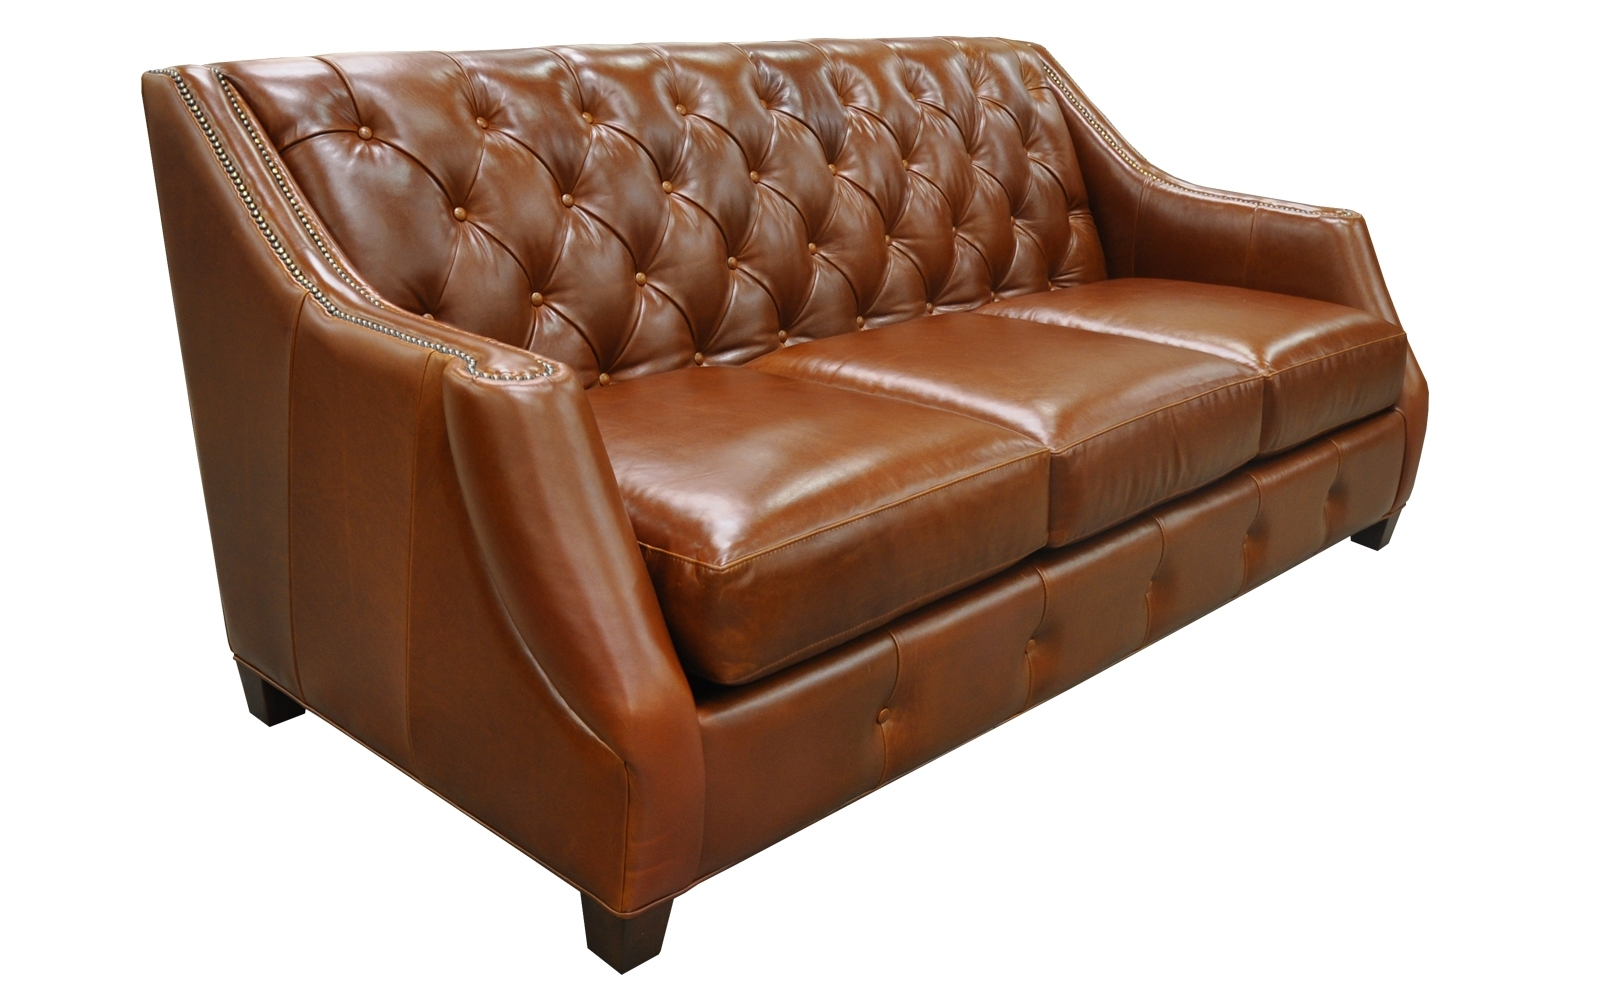 Scarborough Sectional Available – Omnia Leather Throughout Scarborough Sectional Sofas (Image 9 of 10)